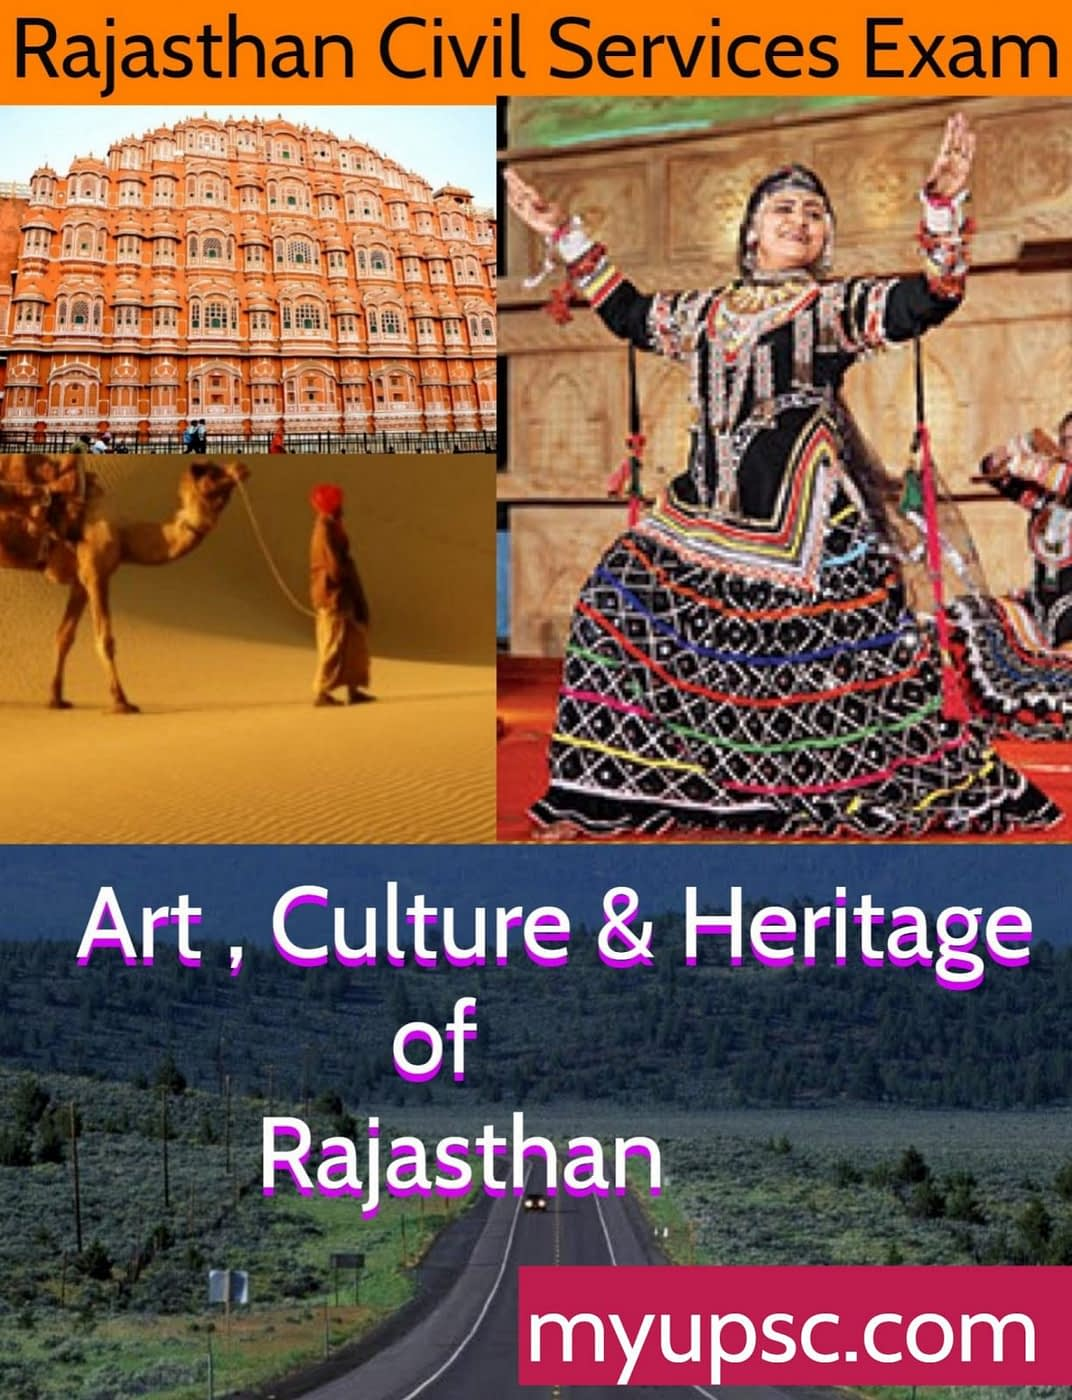 art-culture-heritage-rajasthan